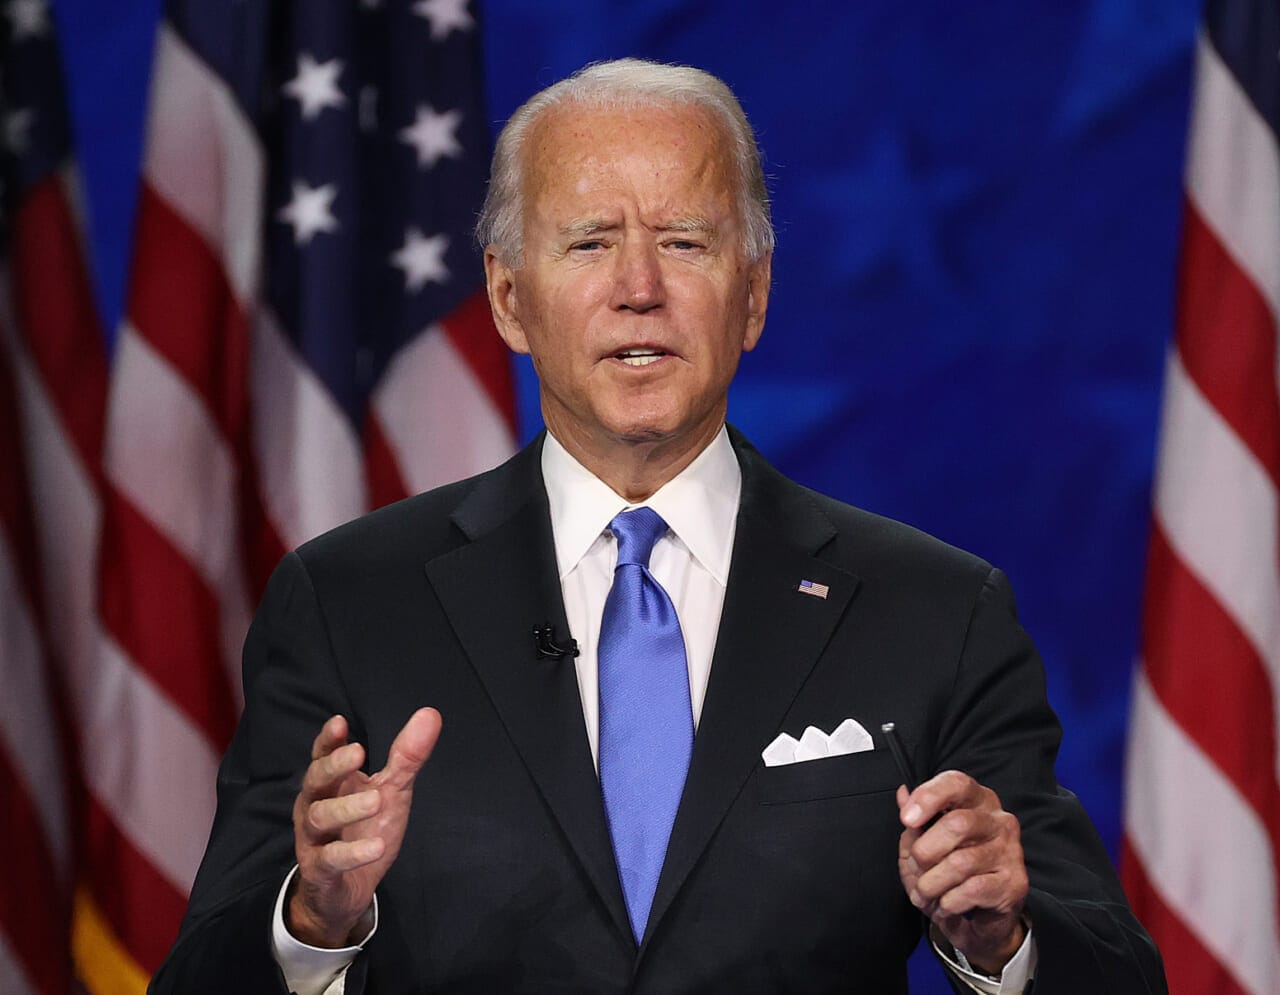 Biden says 'no excuse for looting, violence' amid Philadelphia unrest